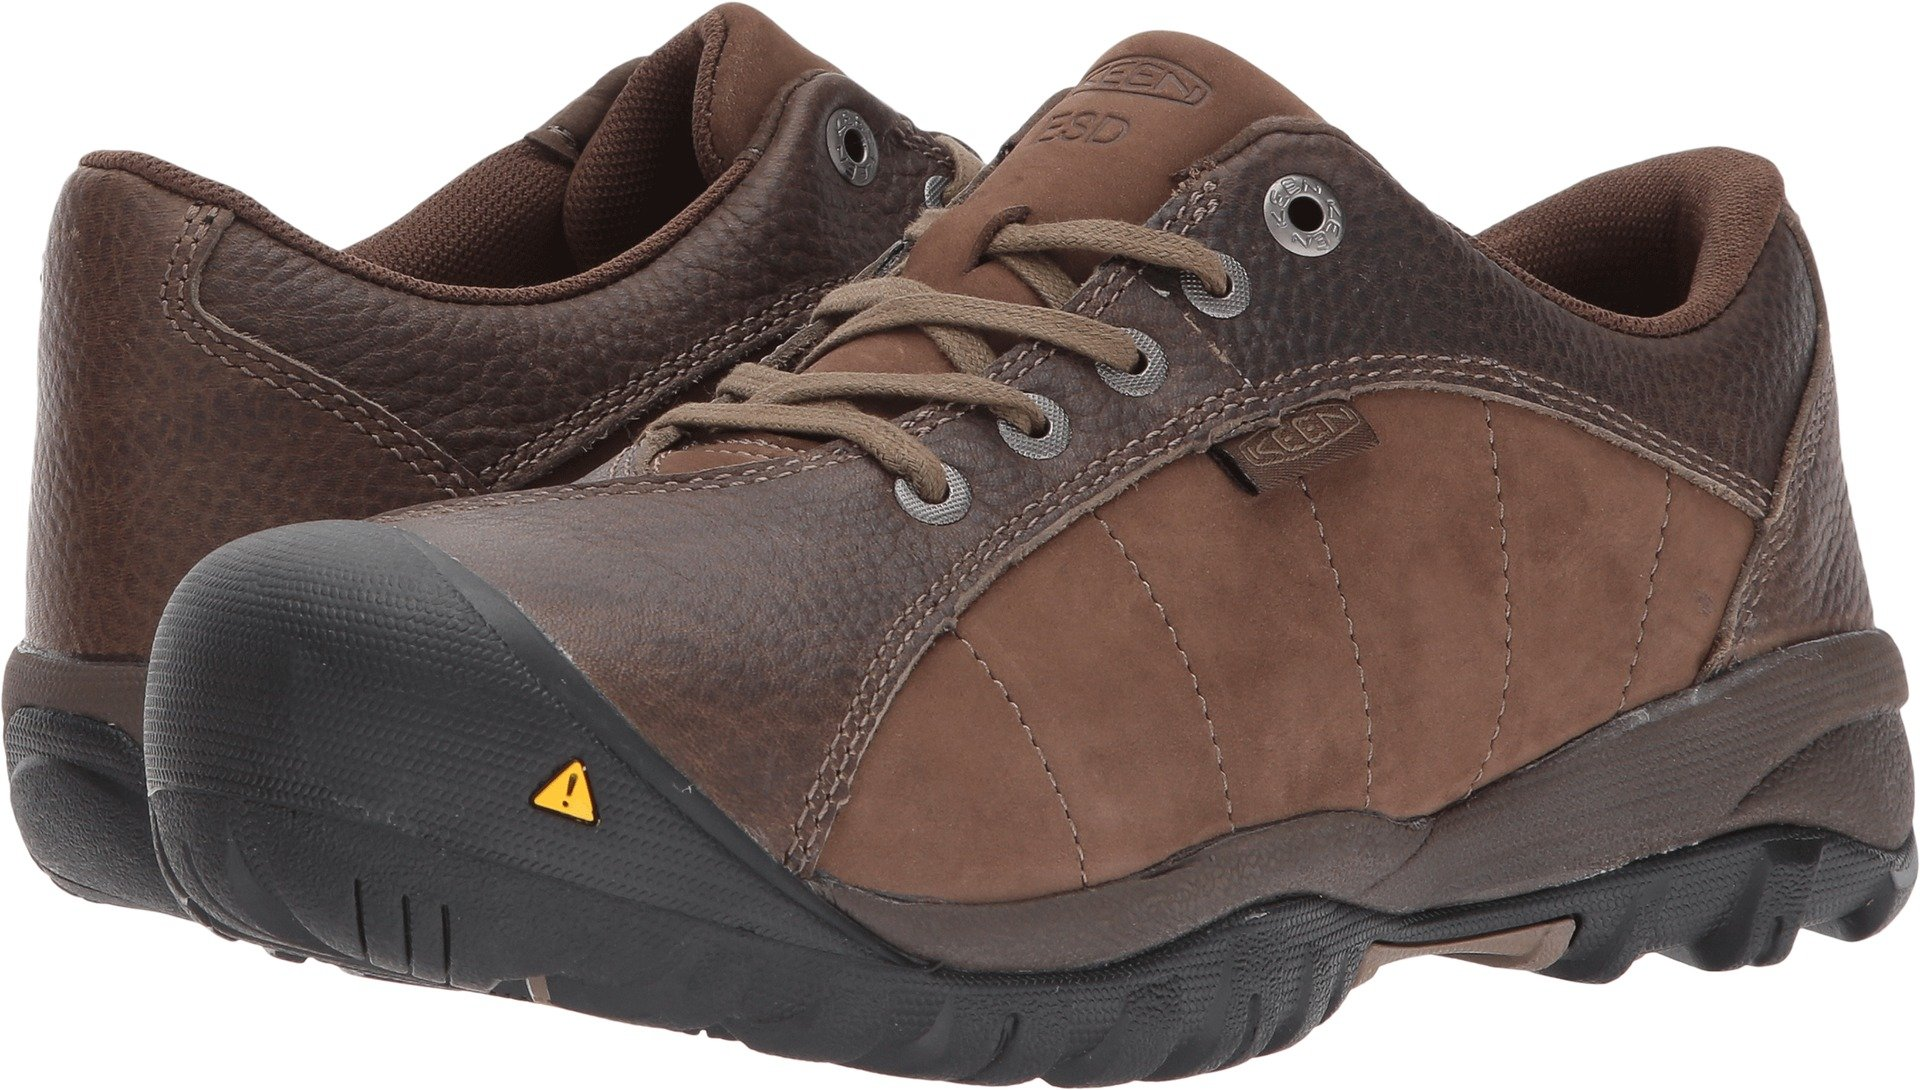 KEEN Utility Women's Santa FE at ESD Industrial and Construction Shoe, Cascade Brown/Shiitake, 7 M US